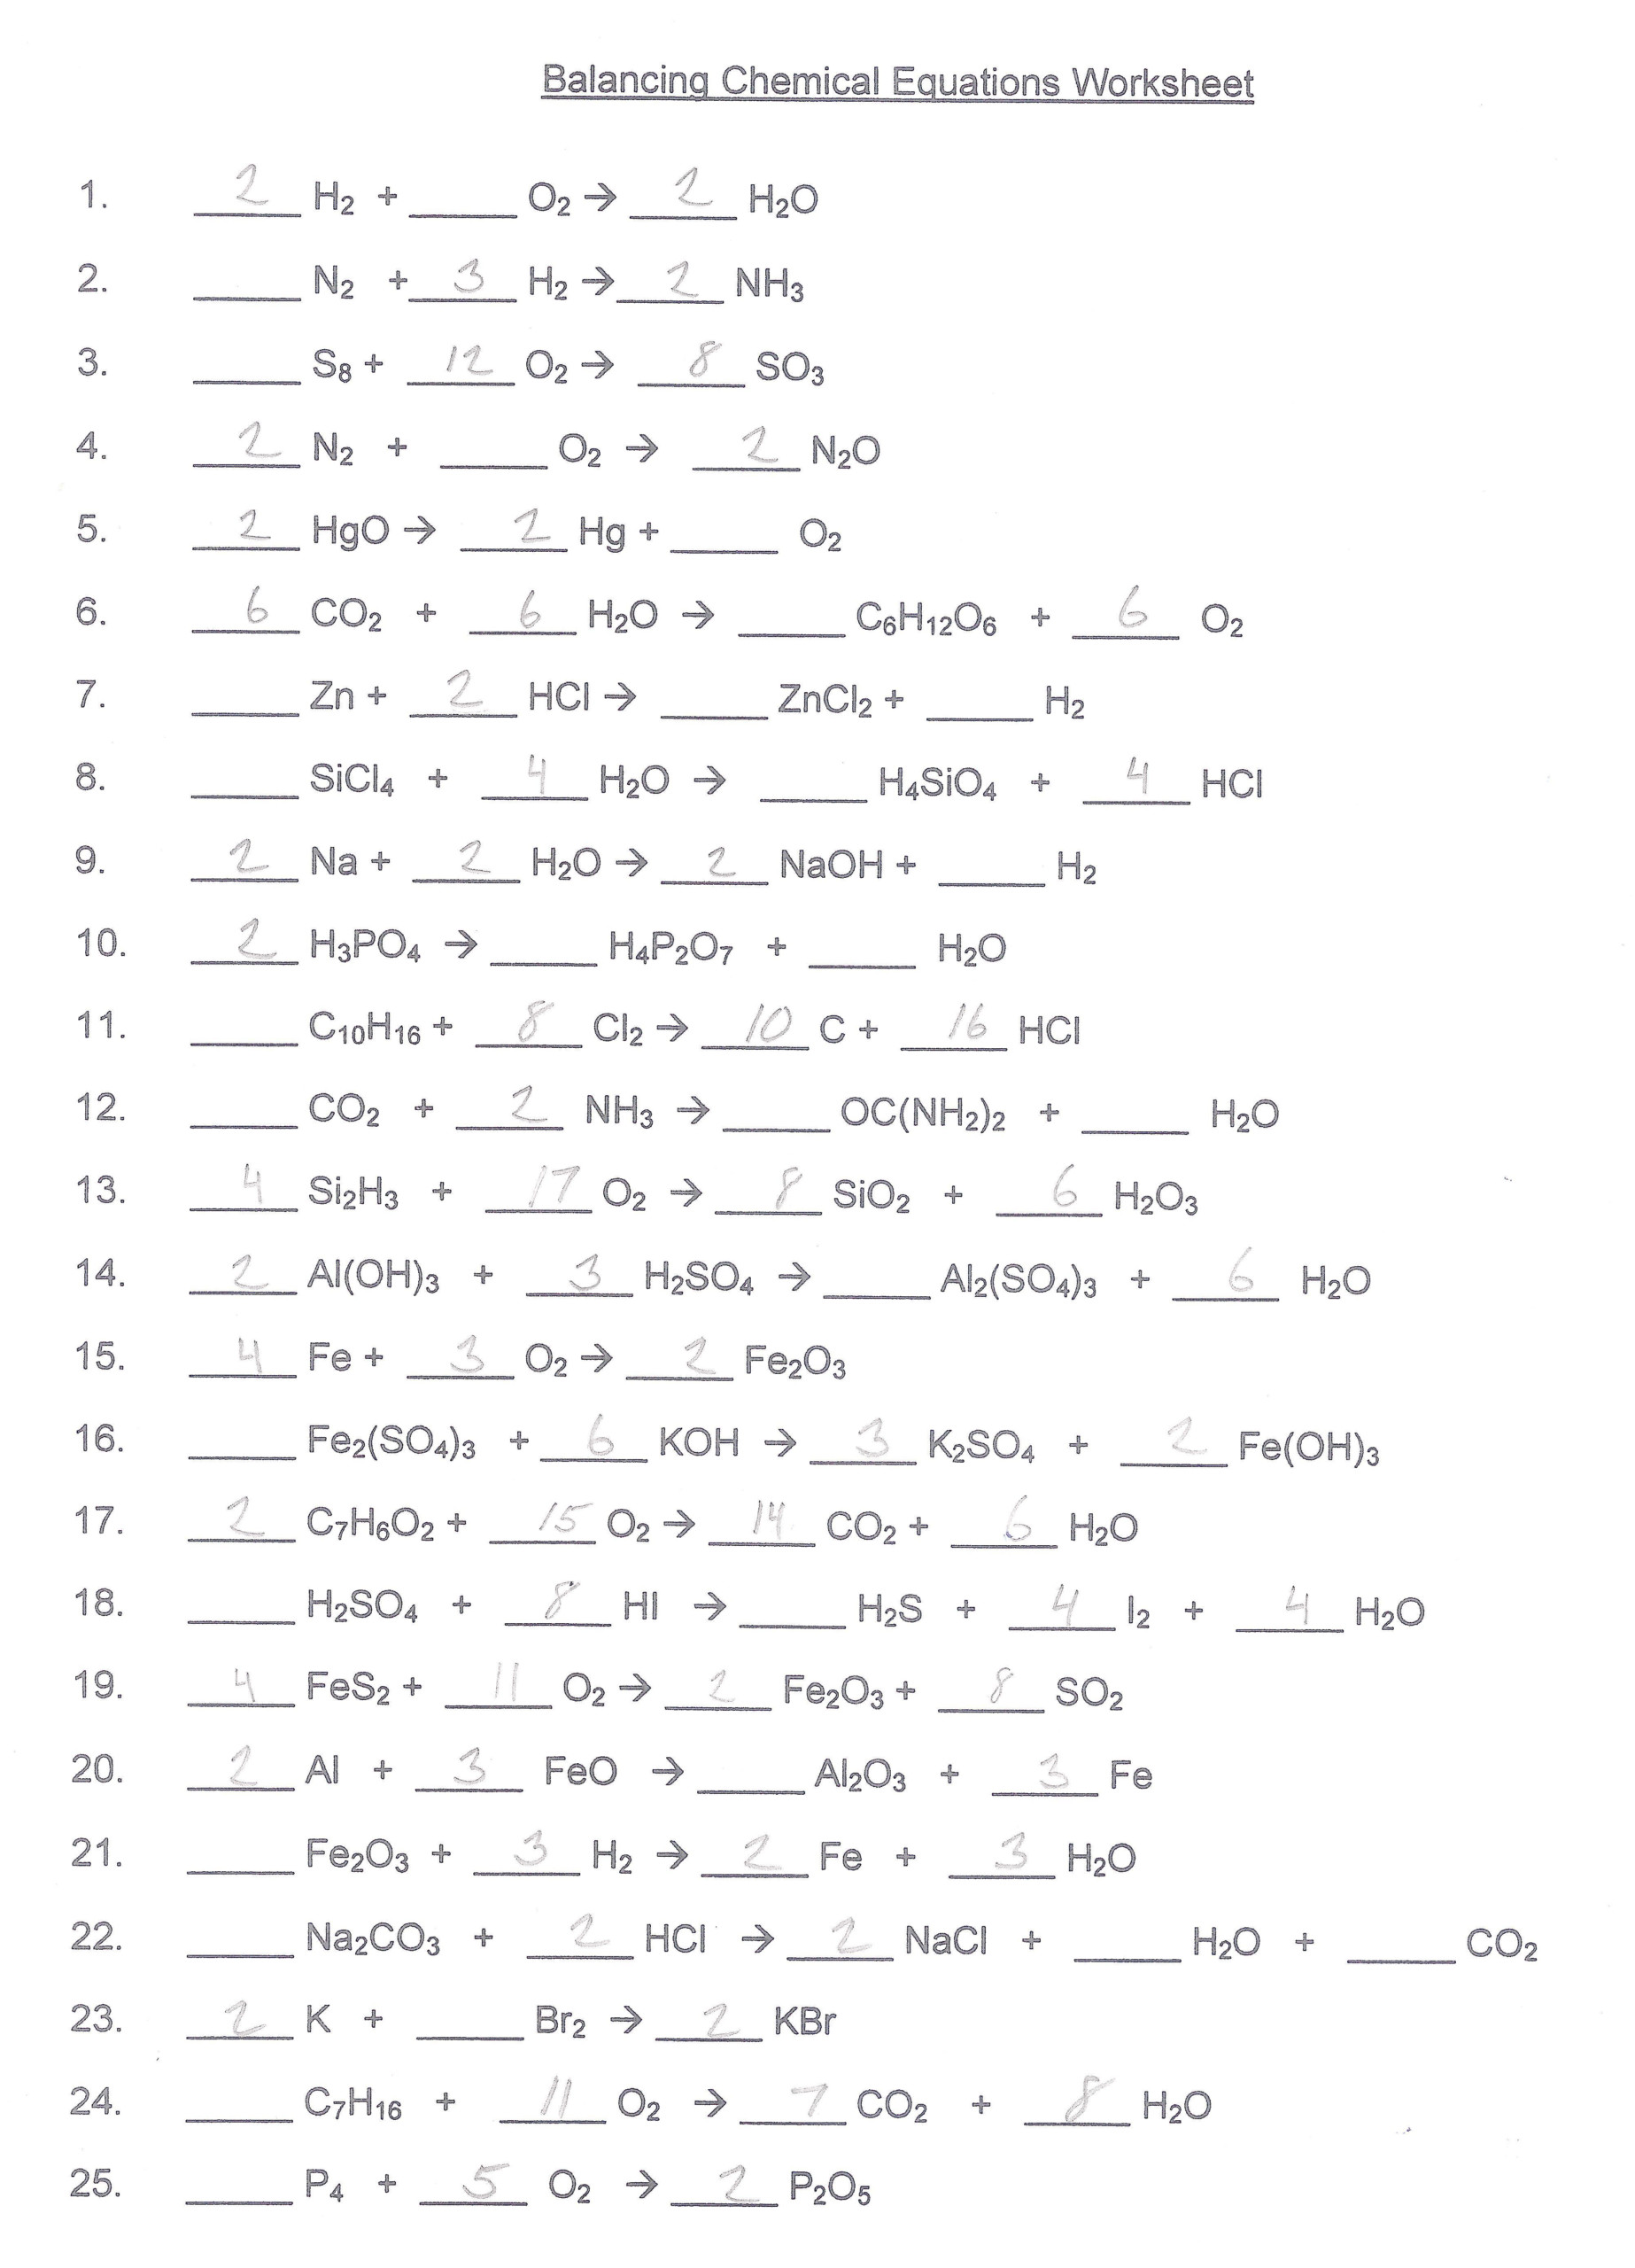 Writing Chemical Reactions Worksheet 1 Answers